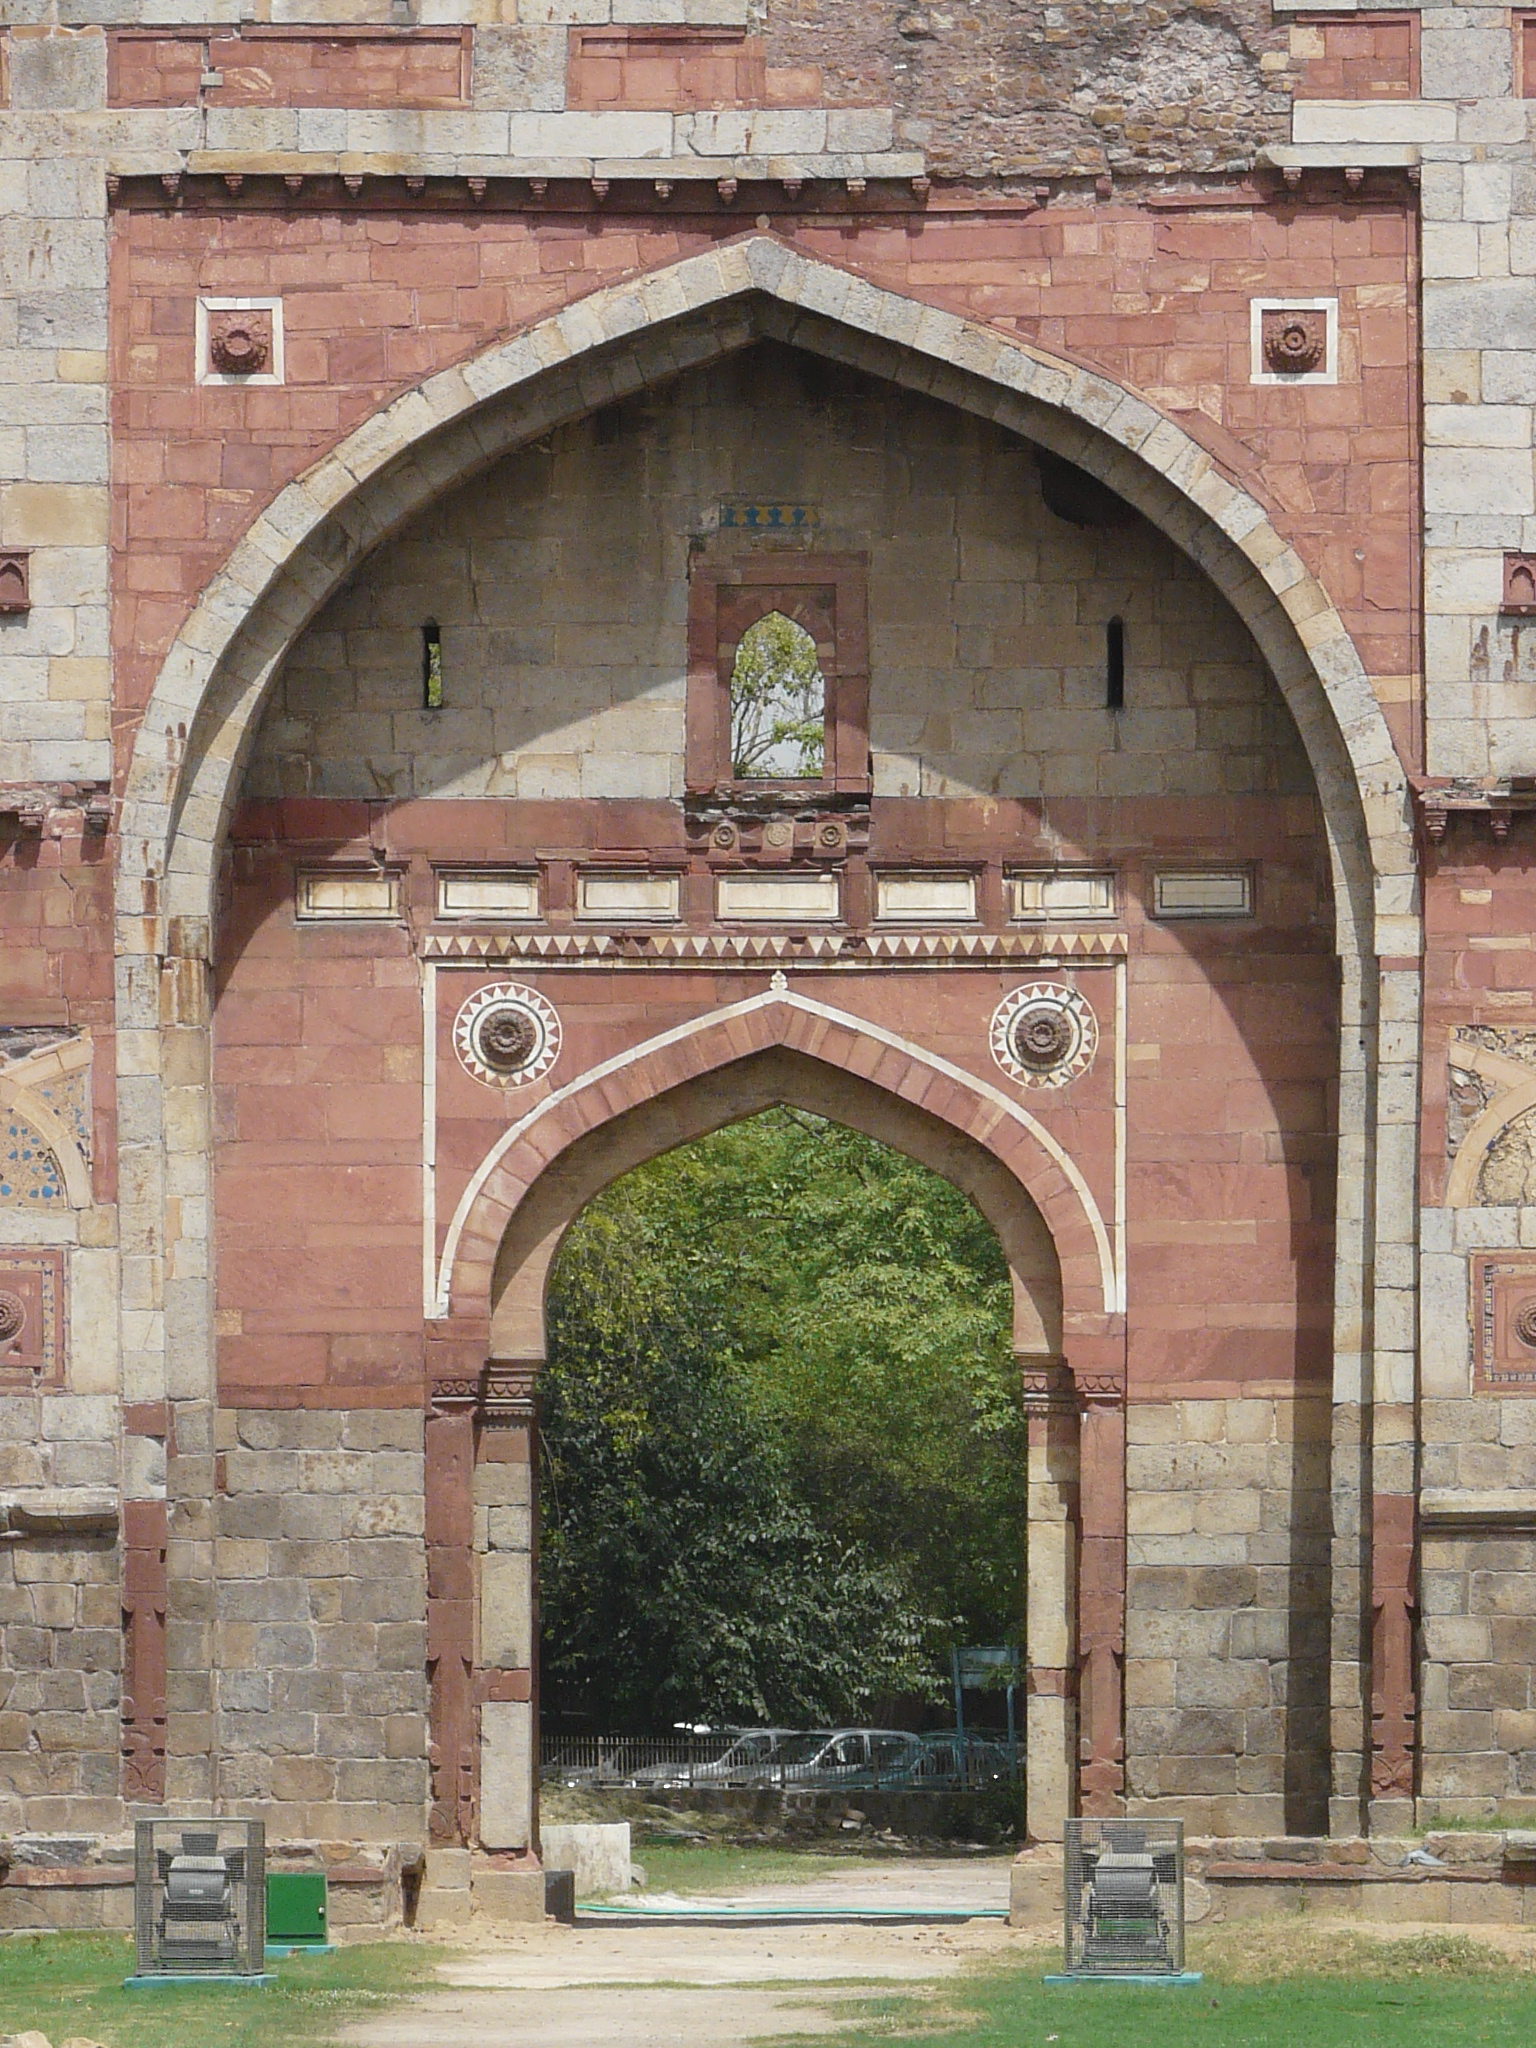 Filelal Darwaza Or Sher Shah Suri Gate Near Purana Qila Delhijpg